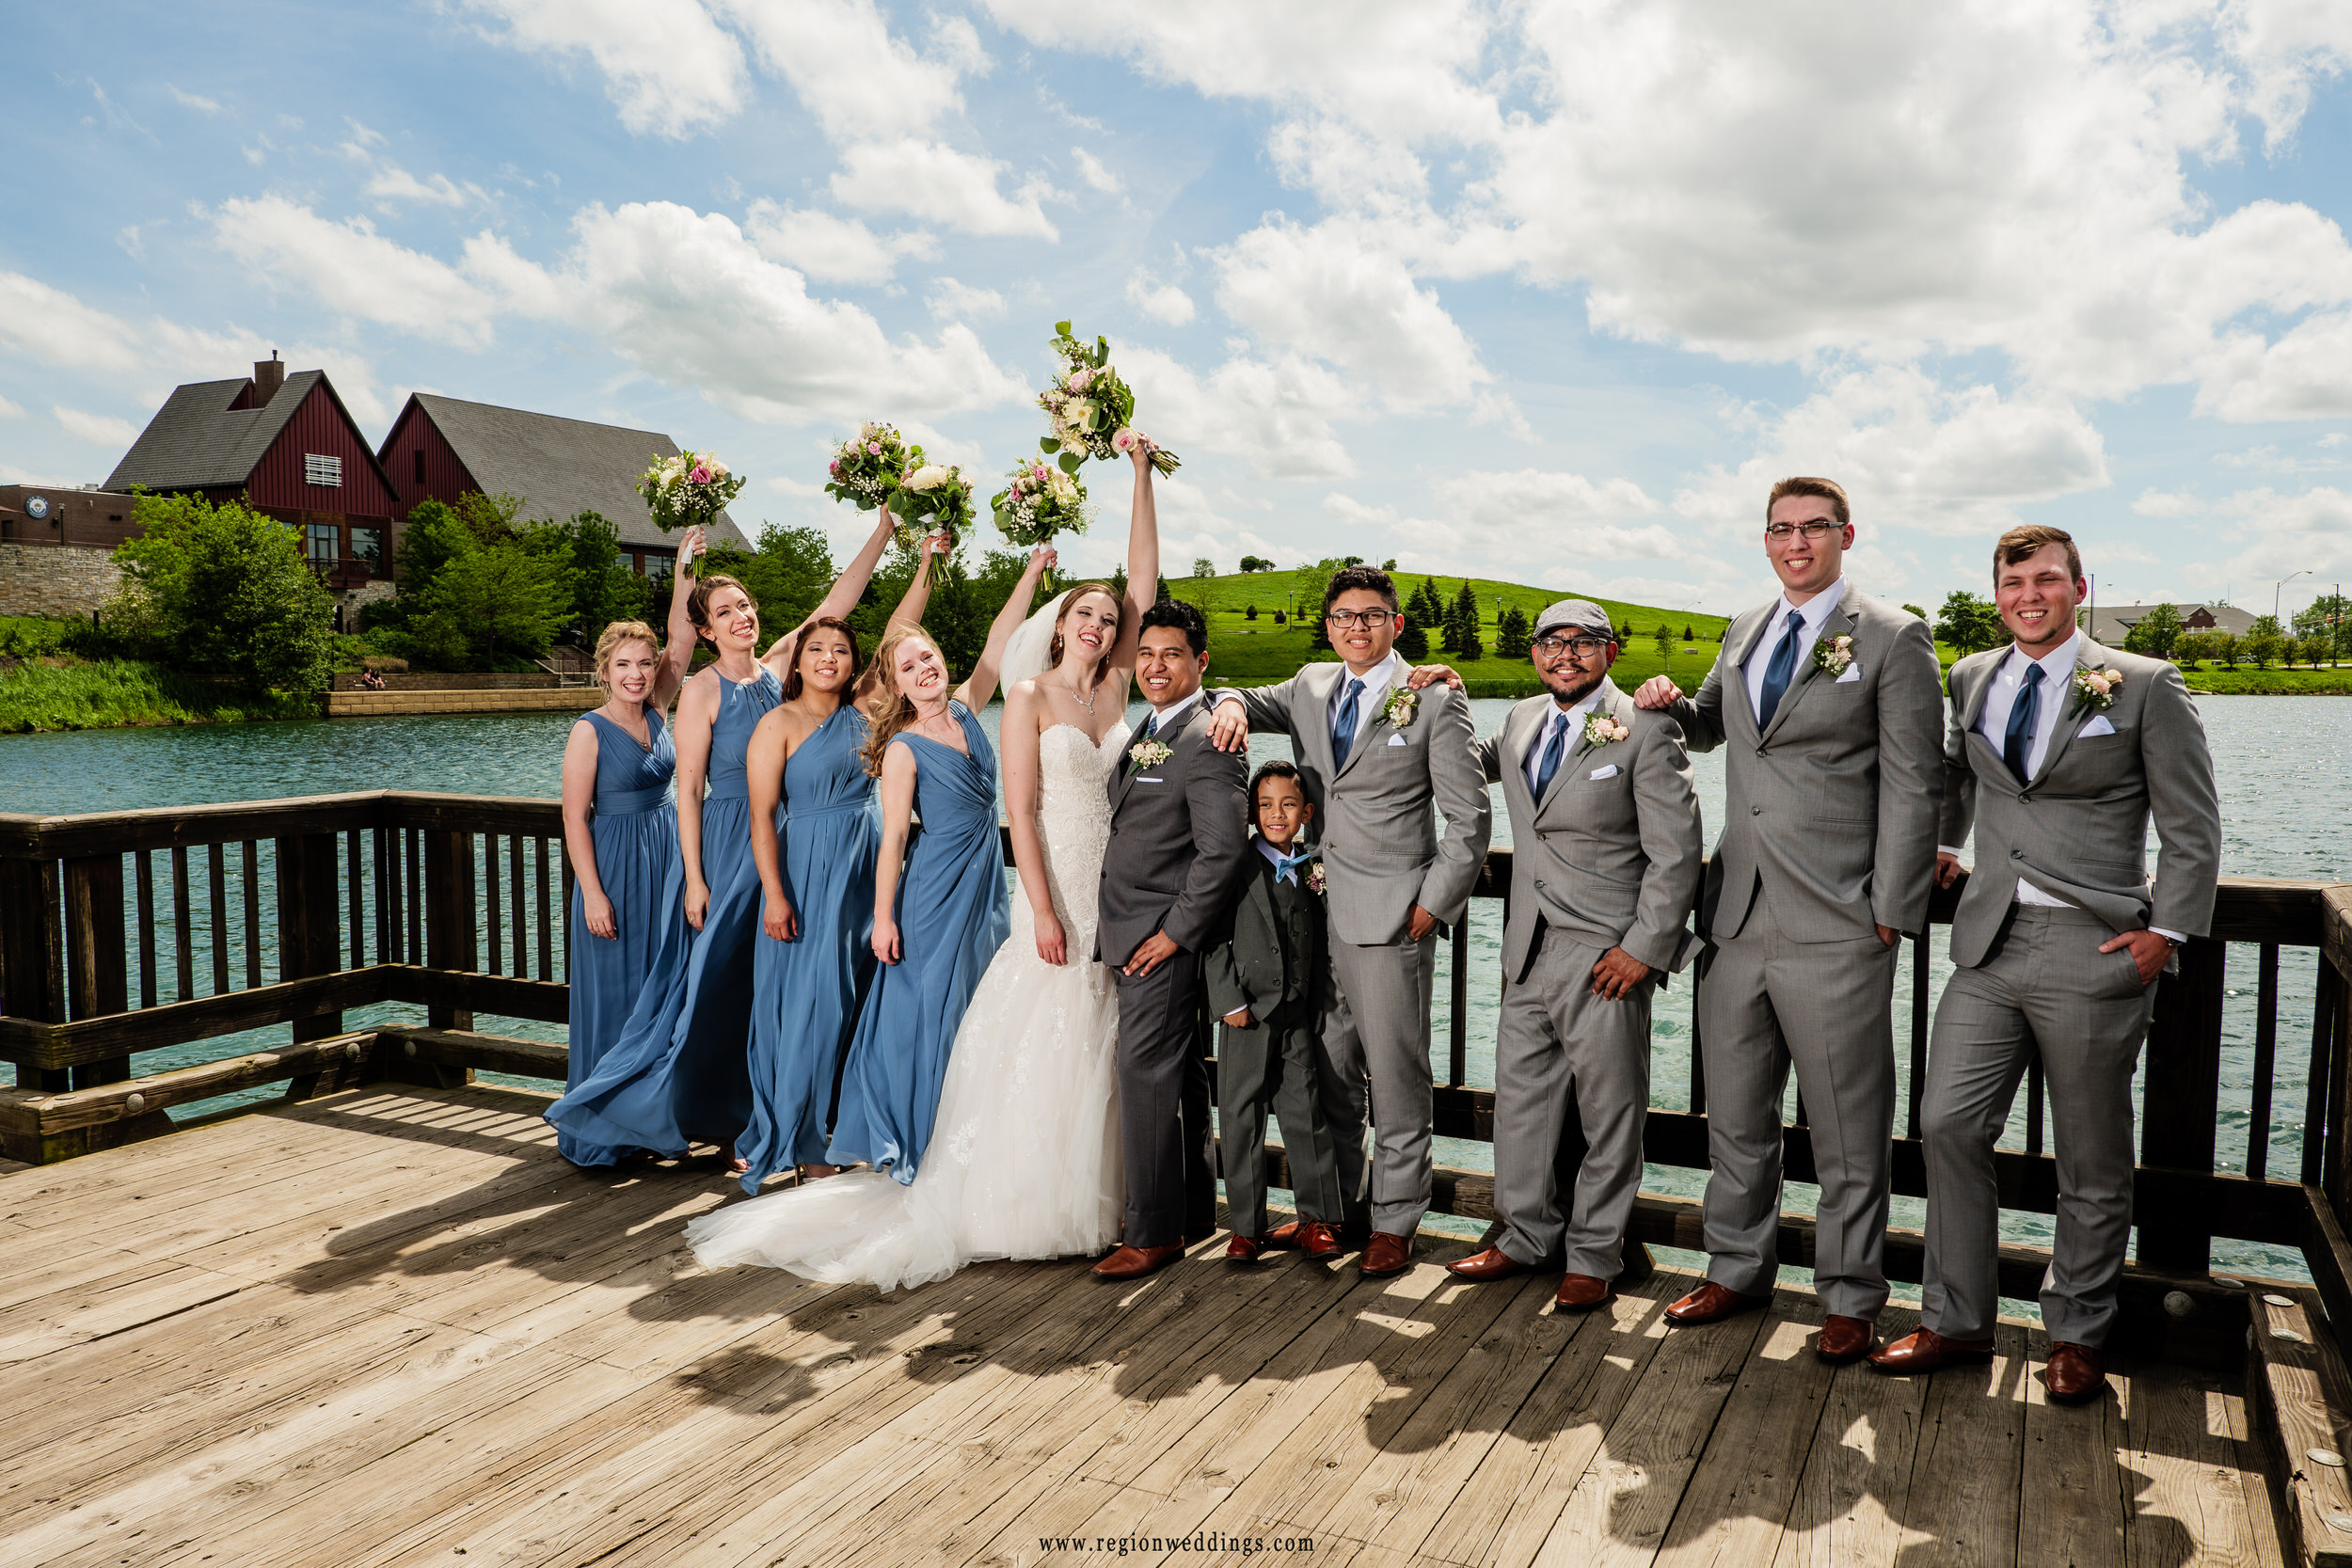 Wedding party enjoying the sunshine on the lake bridge at Centennial Park.